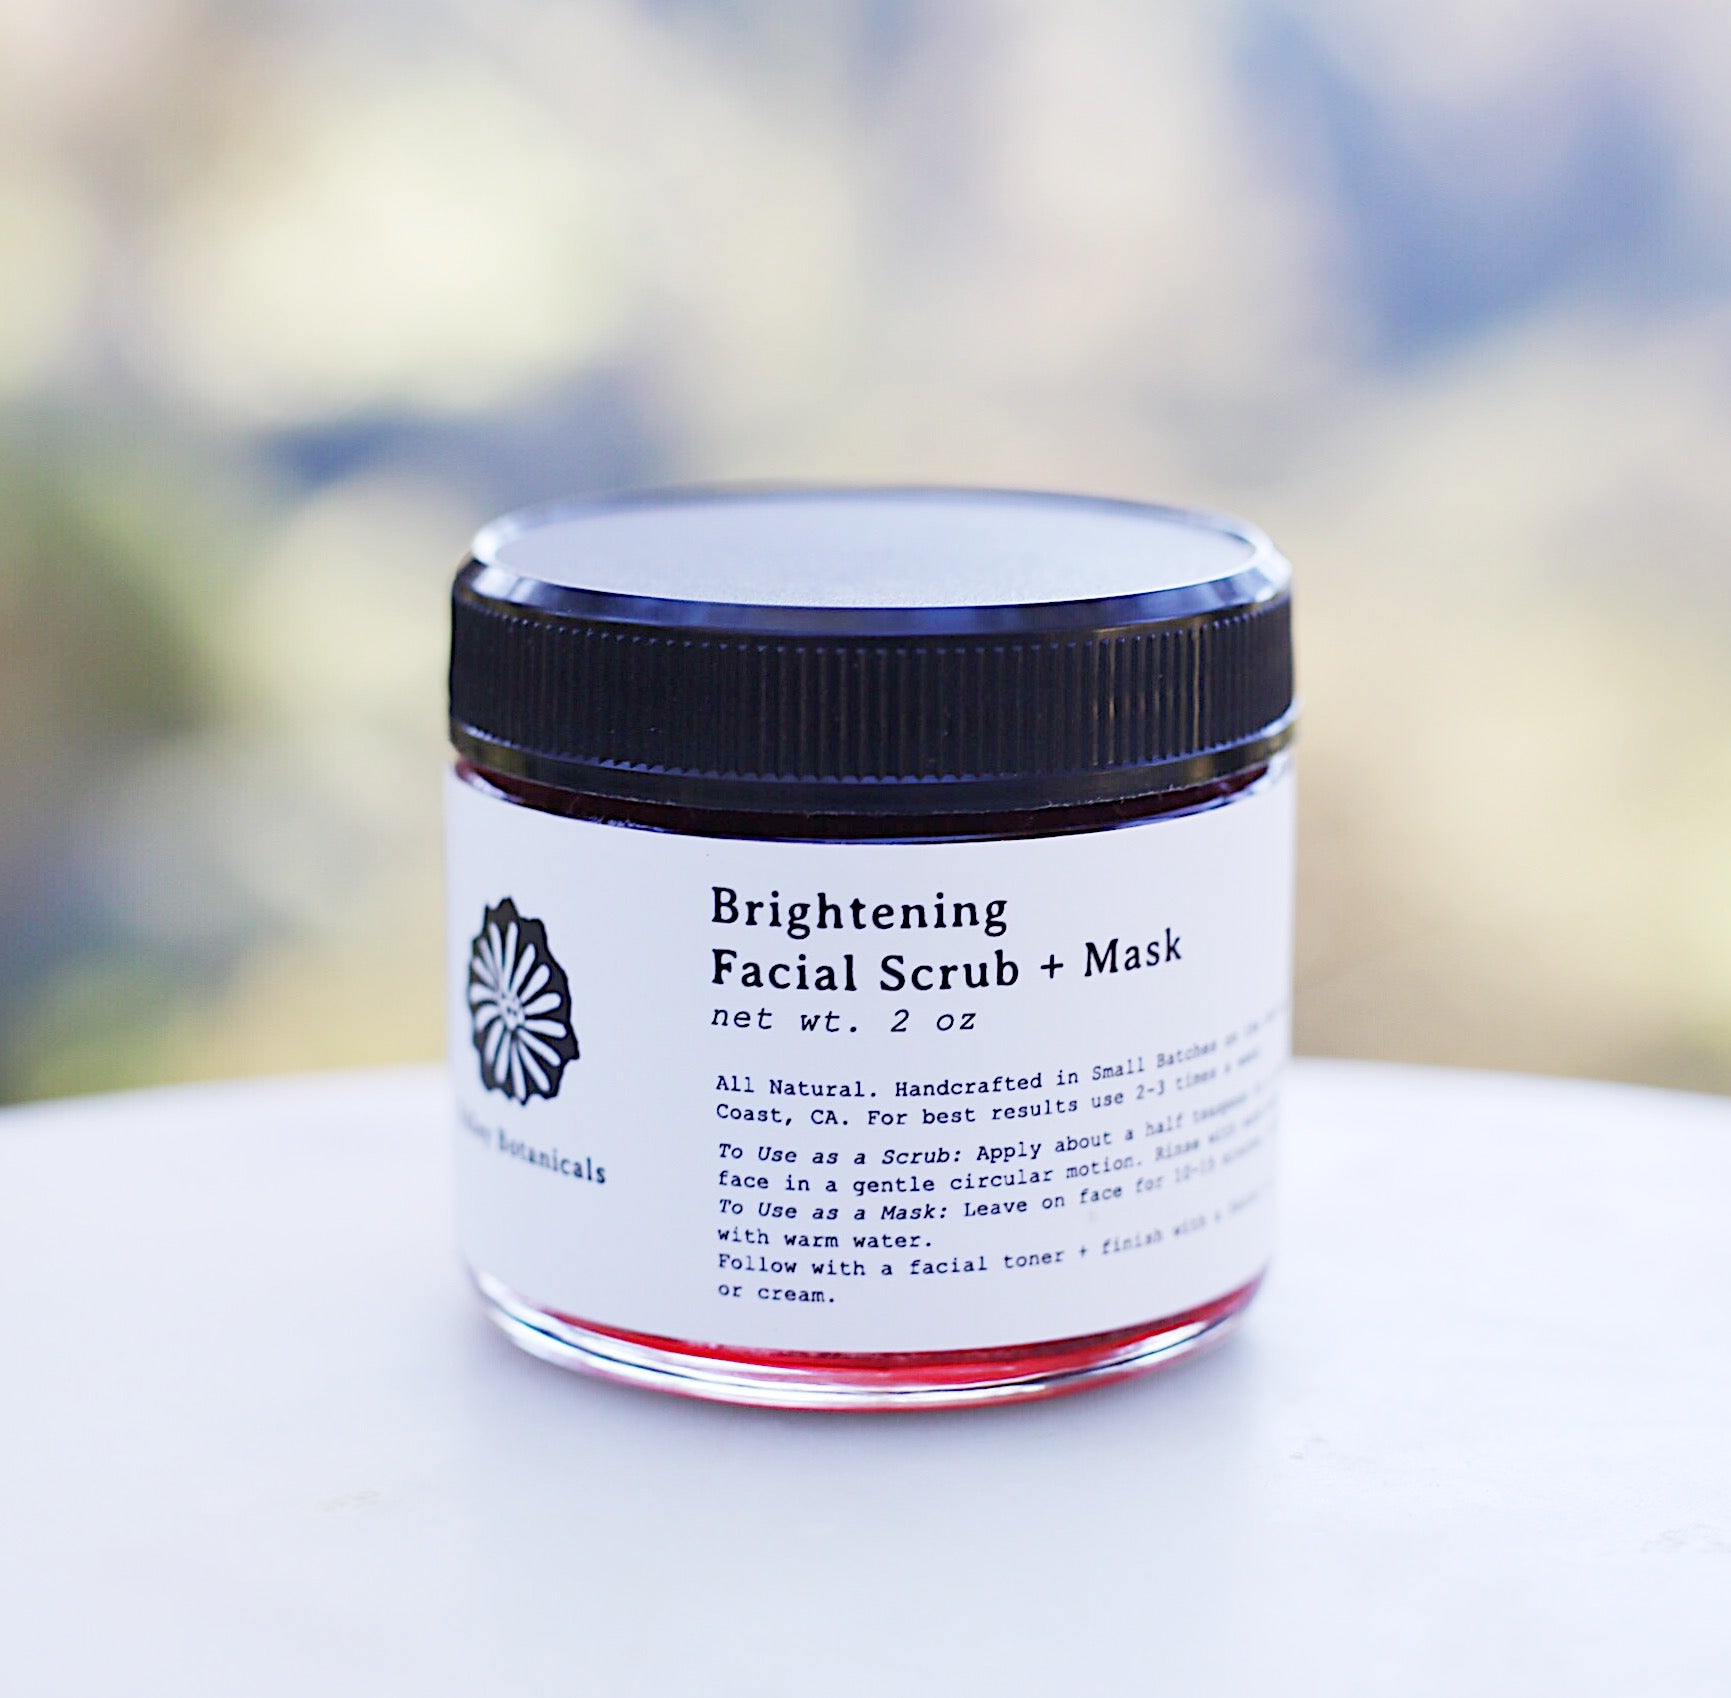 Brightening Facial Scrub + Mask